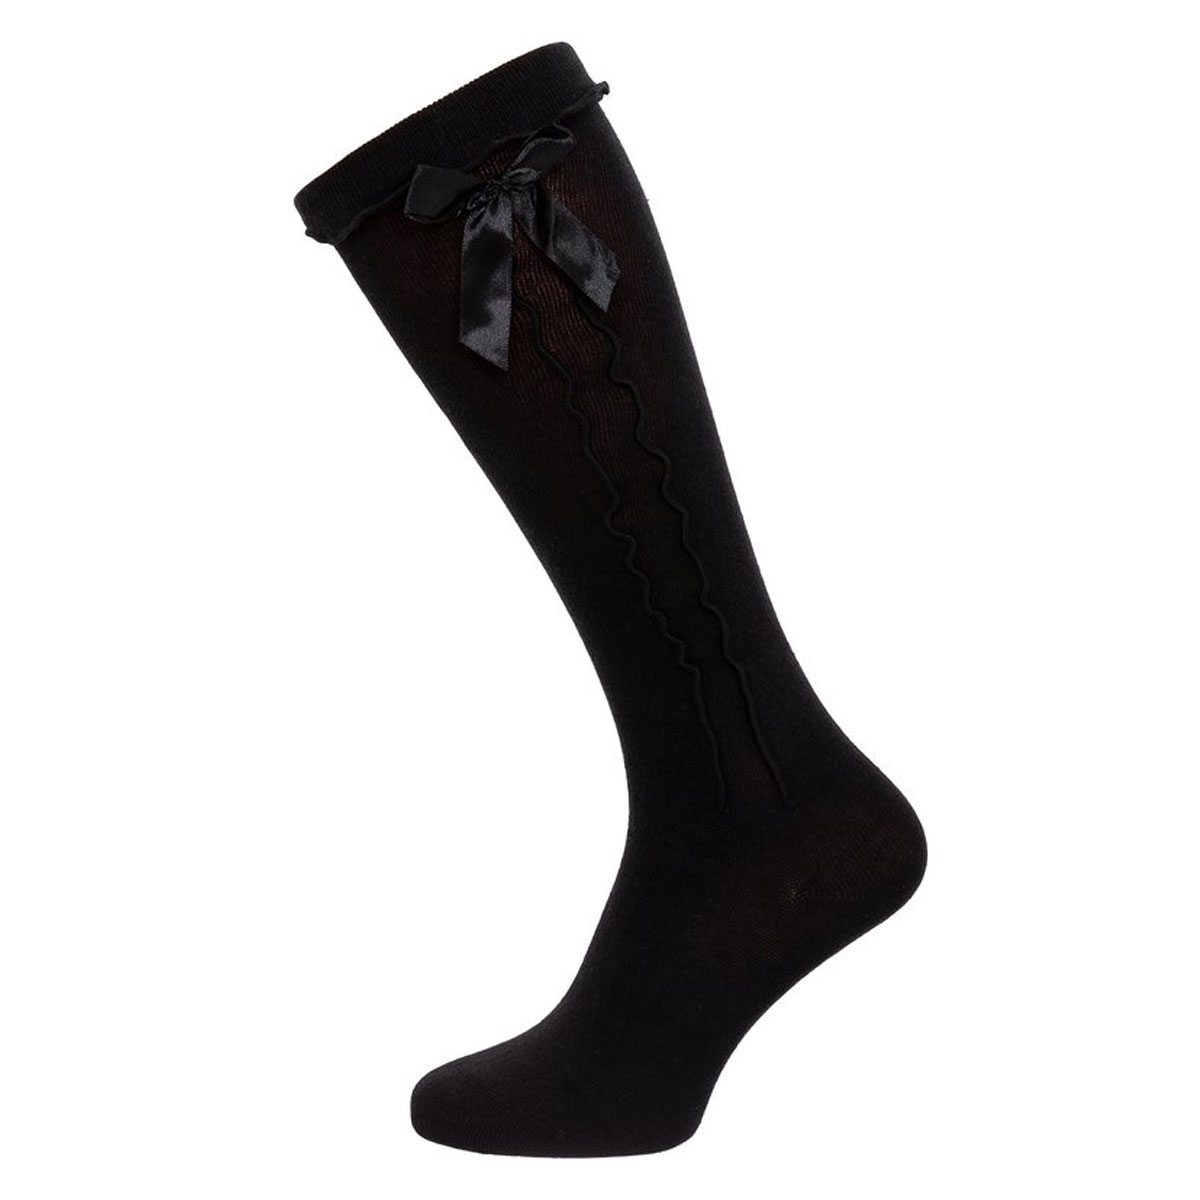 BLACK FEMALE SOCKS WITH RIBBON